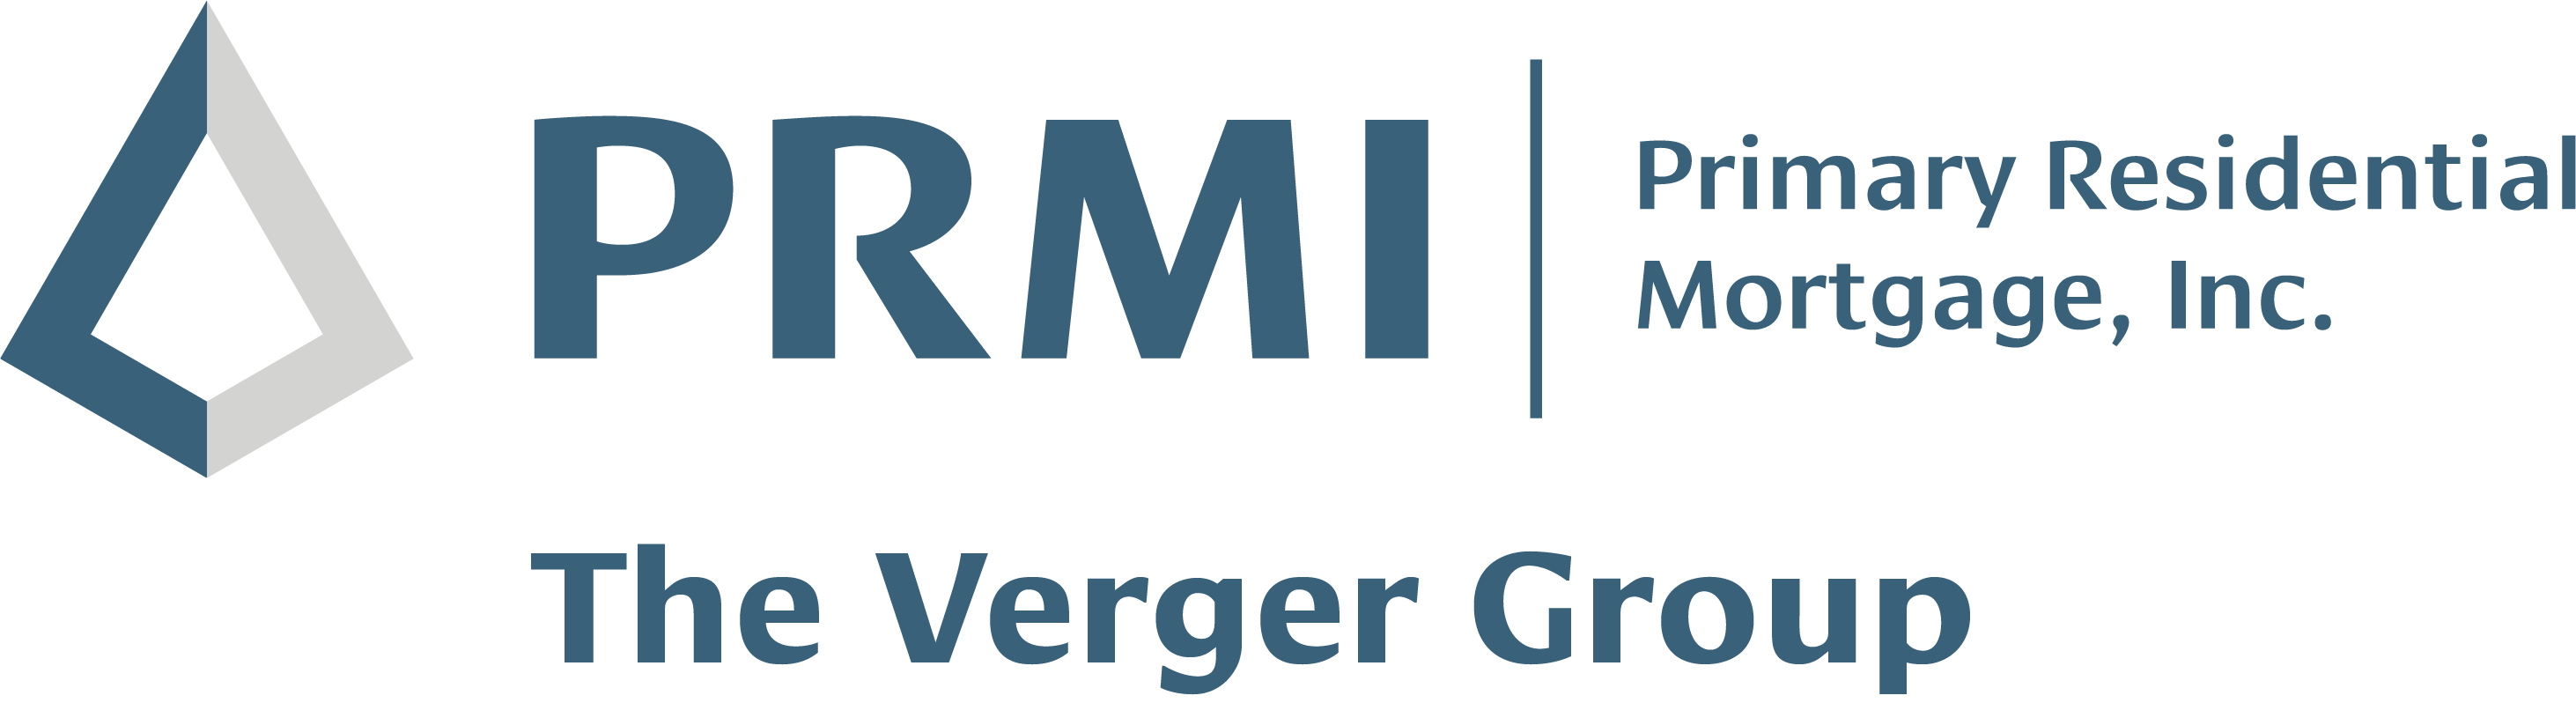 PRMI_Verger-Group_blue-silver